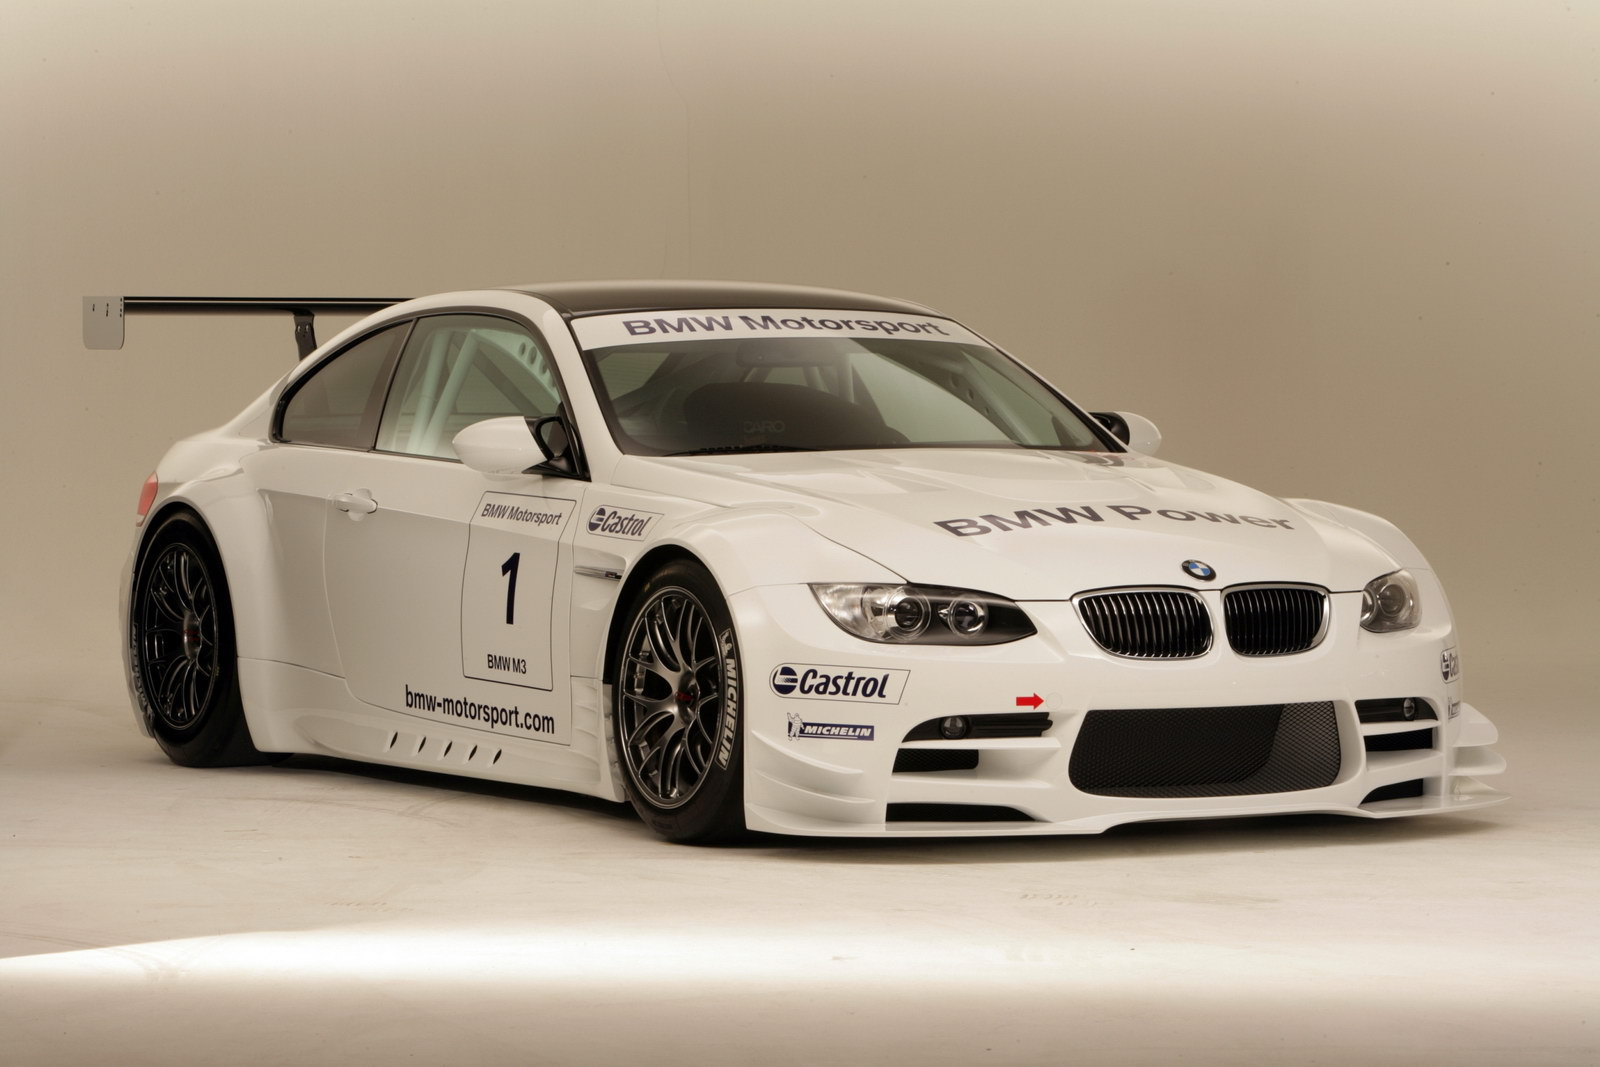 Bmw M3 New Car Specifications Brand Model Coupe Edition Wallpapers Desktop Download Wallpaper